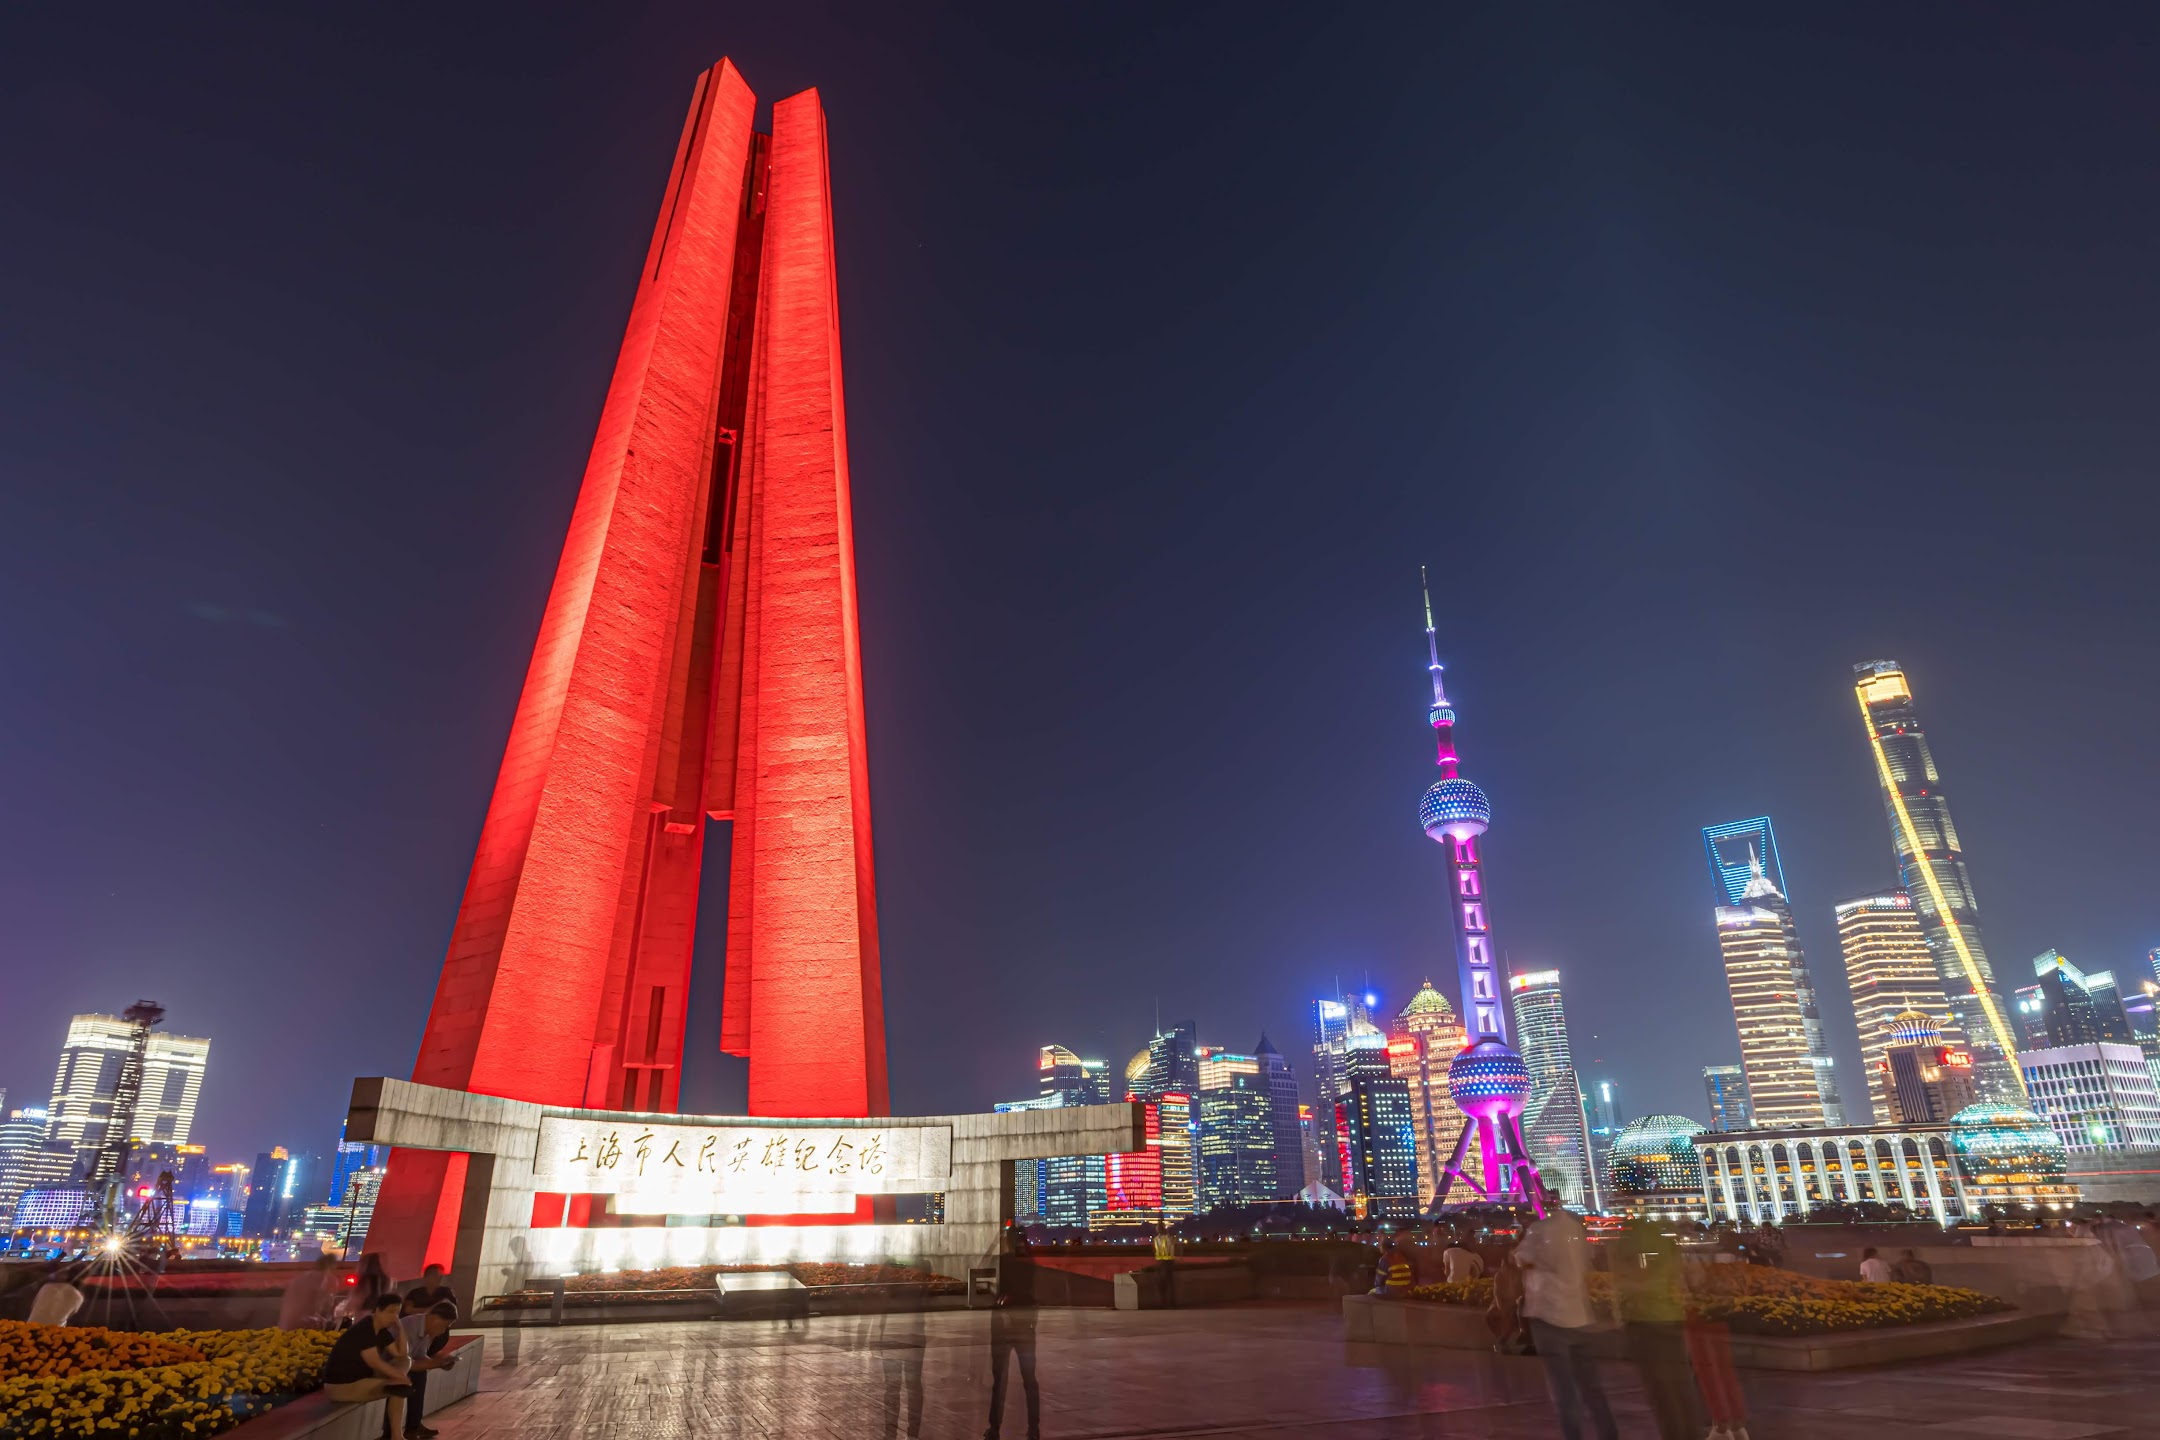 Shanghai Waitan (The Bund) People's Heroes Monument2